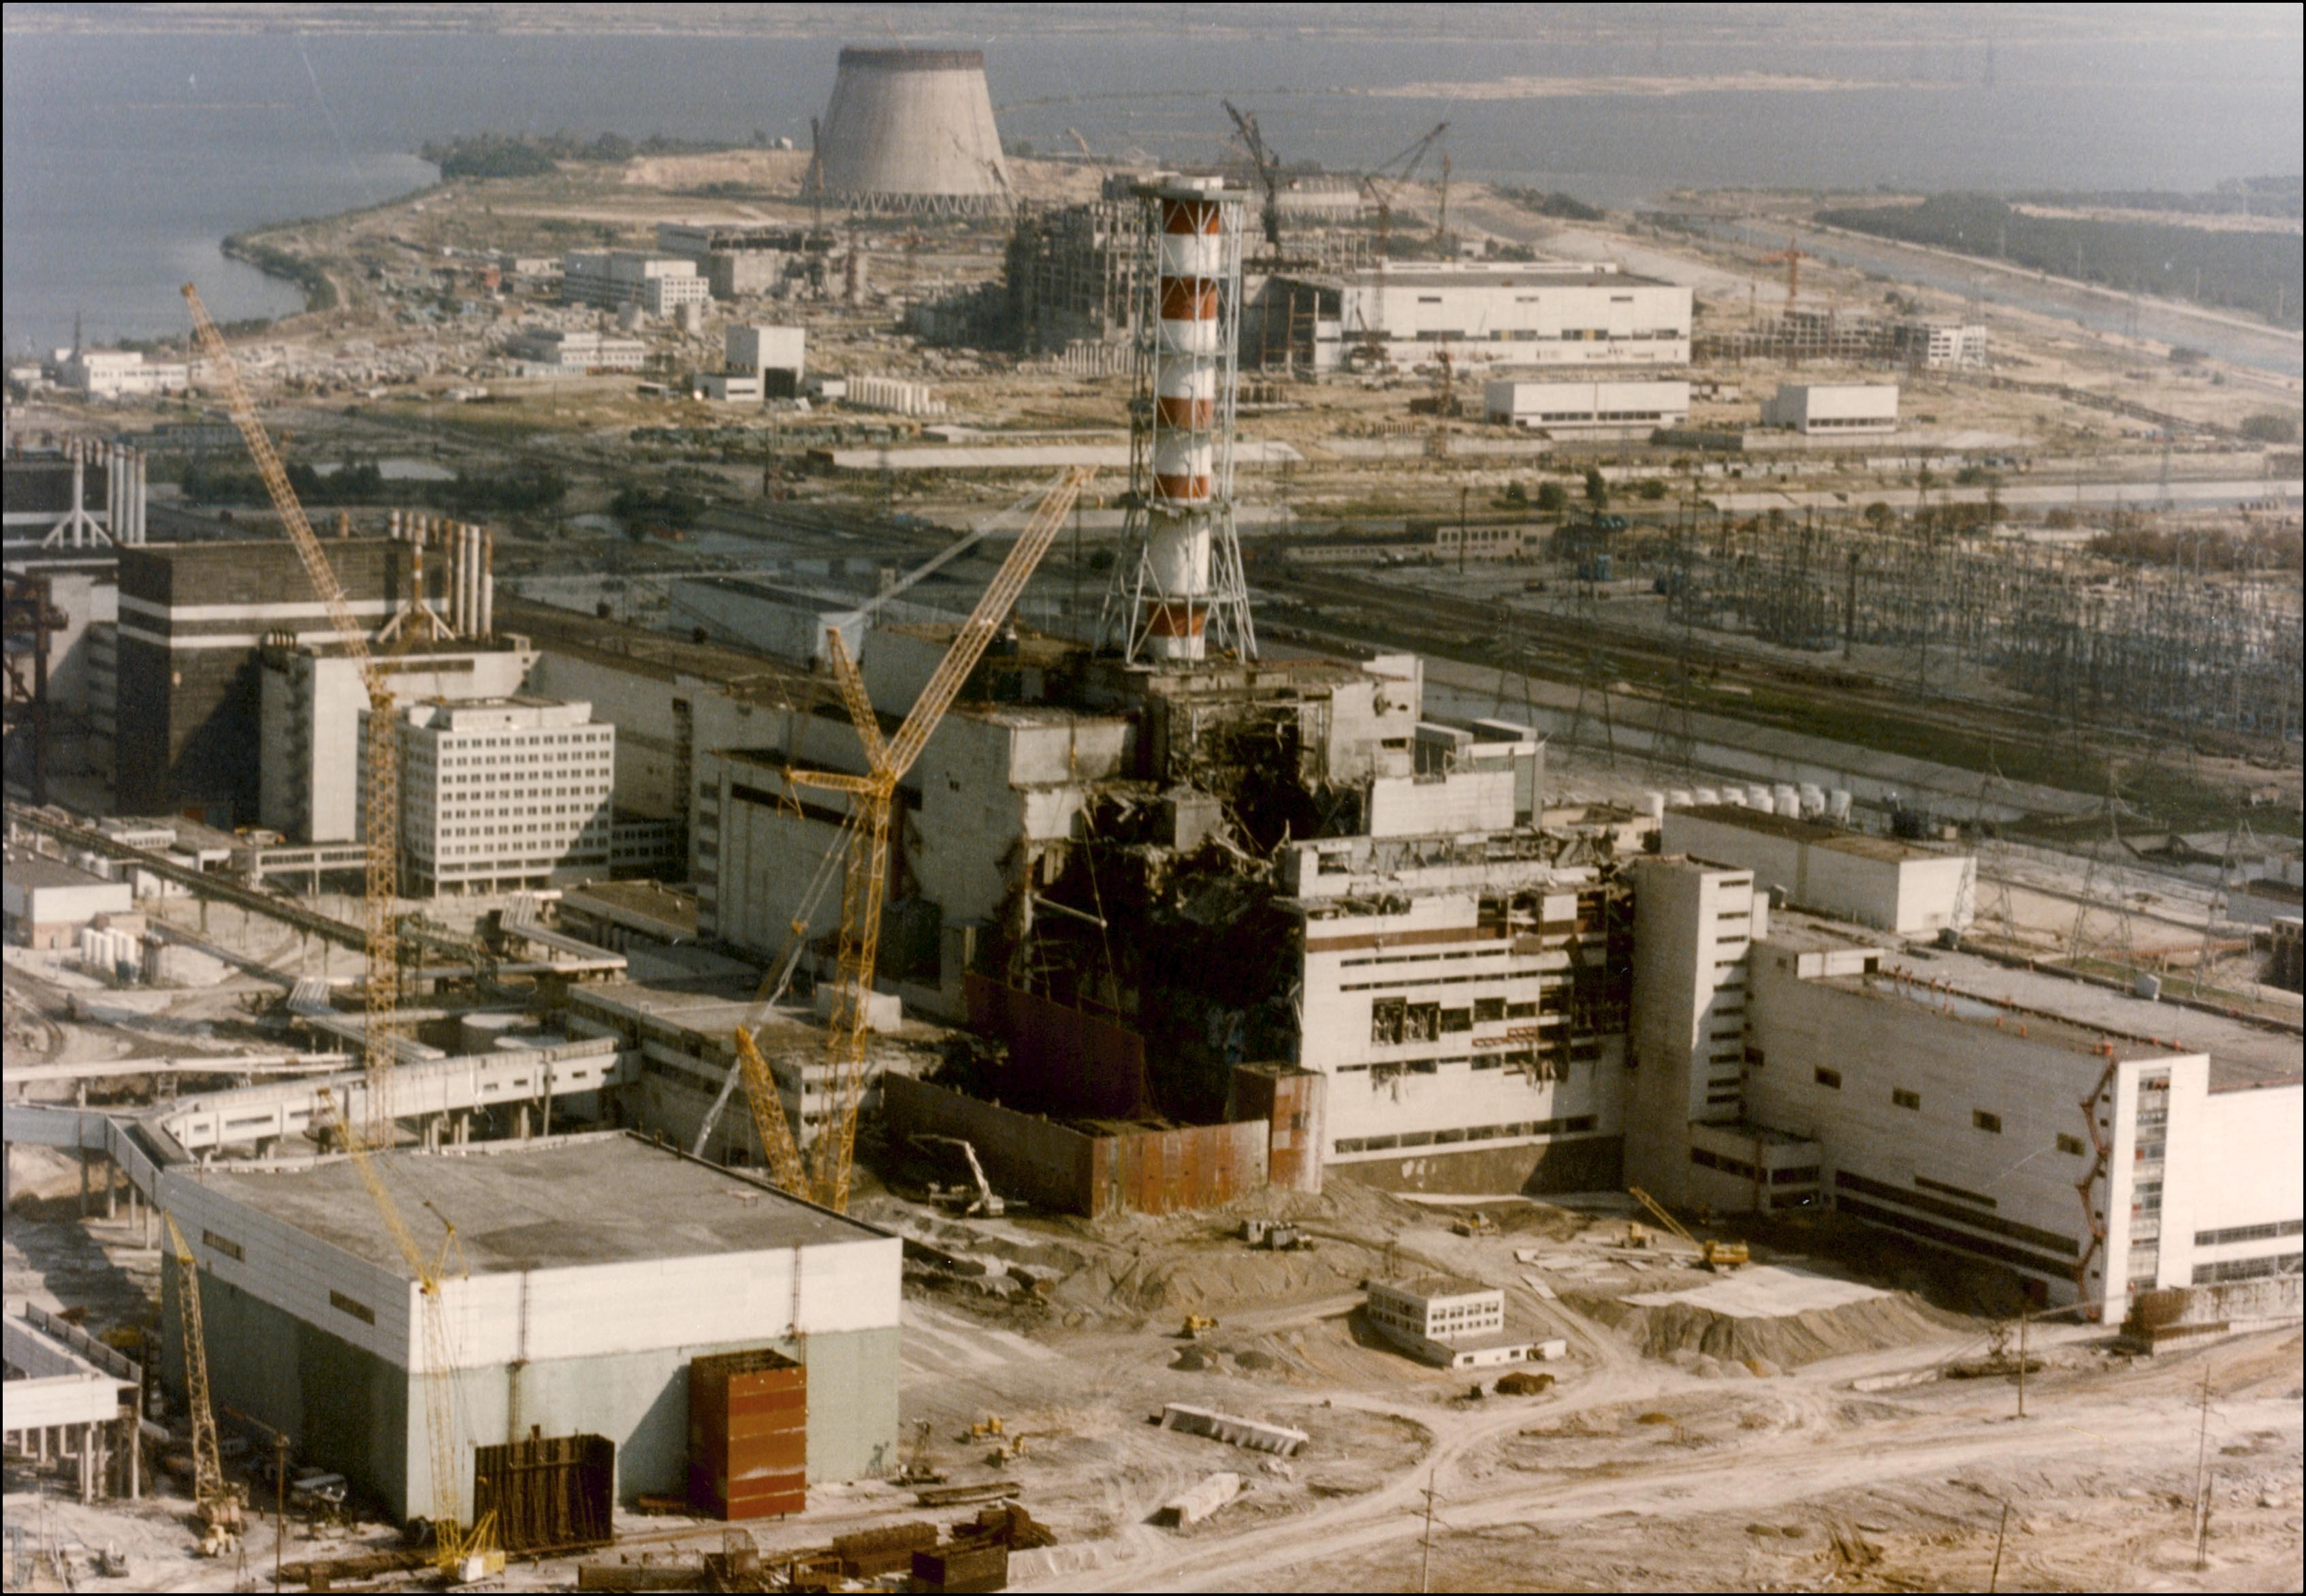 View of the Chernobyl Nuclear power plant three days after the explosion, on April 29, 1986 in Chernobyl, Ukraine.